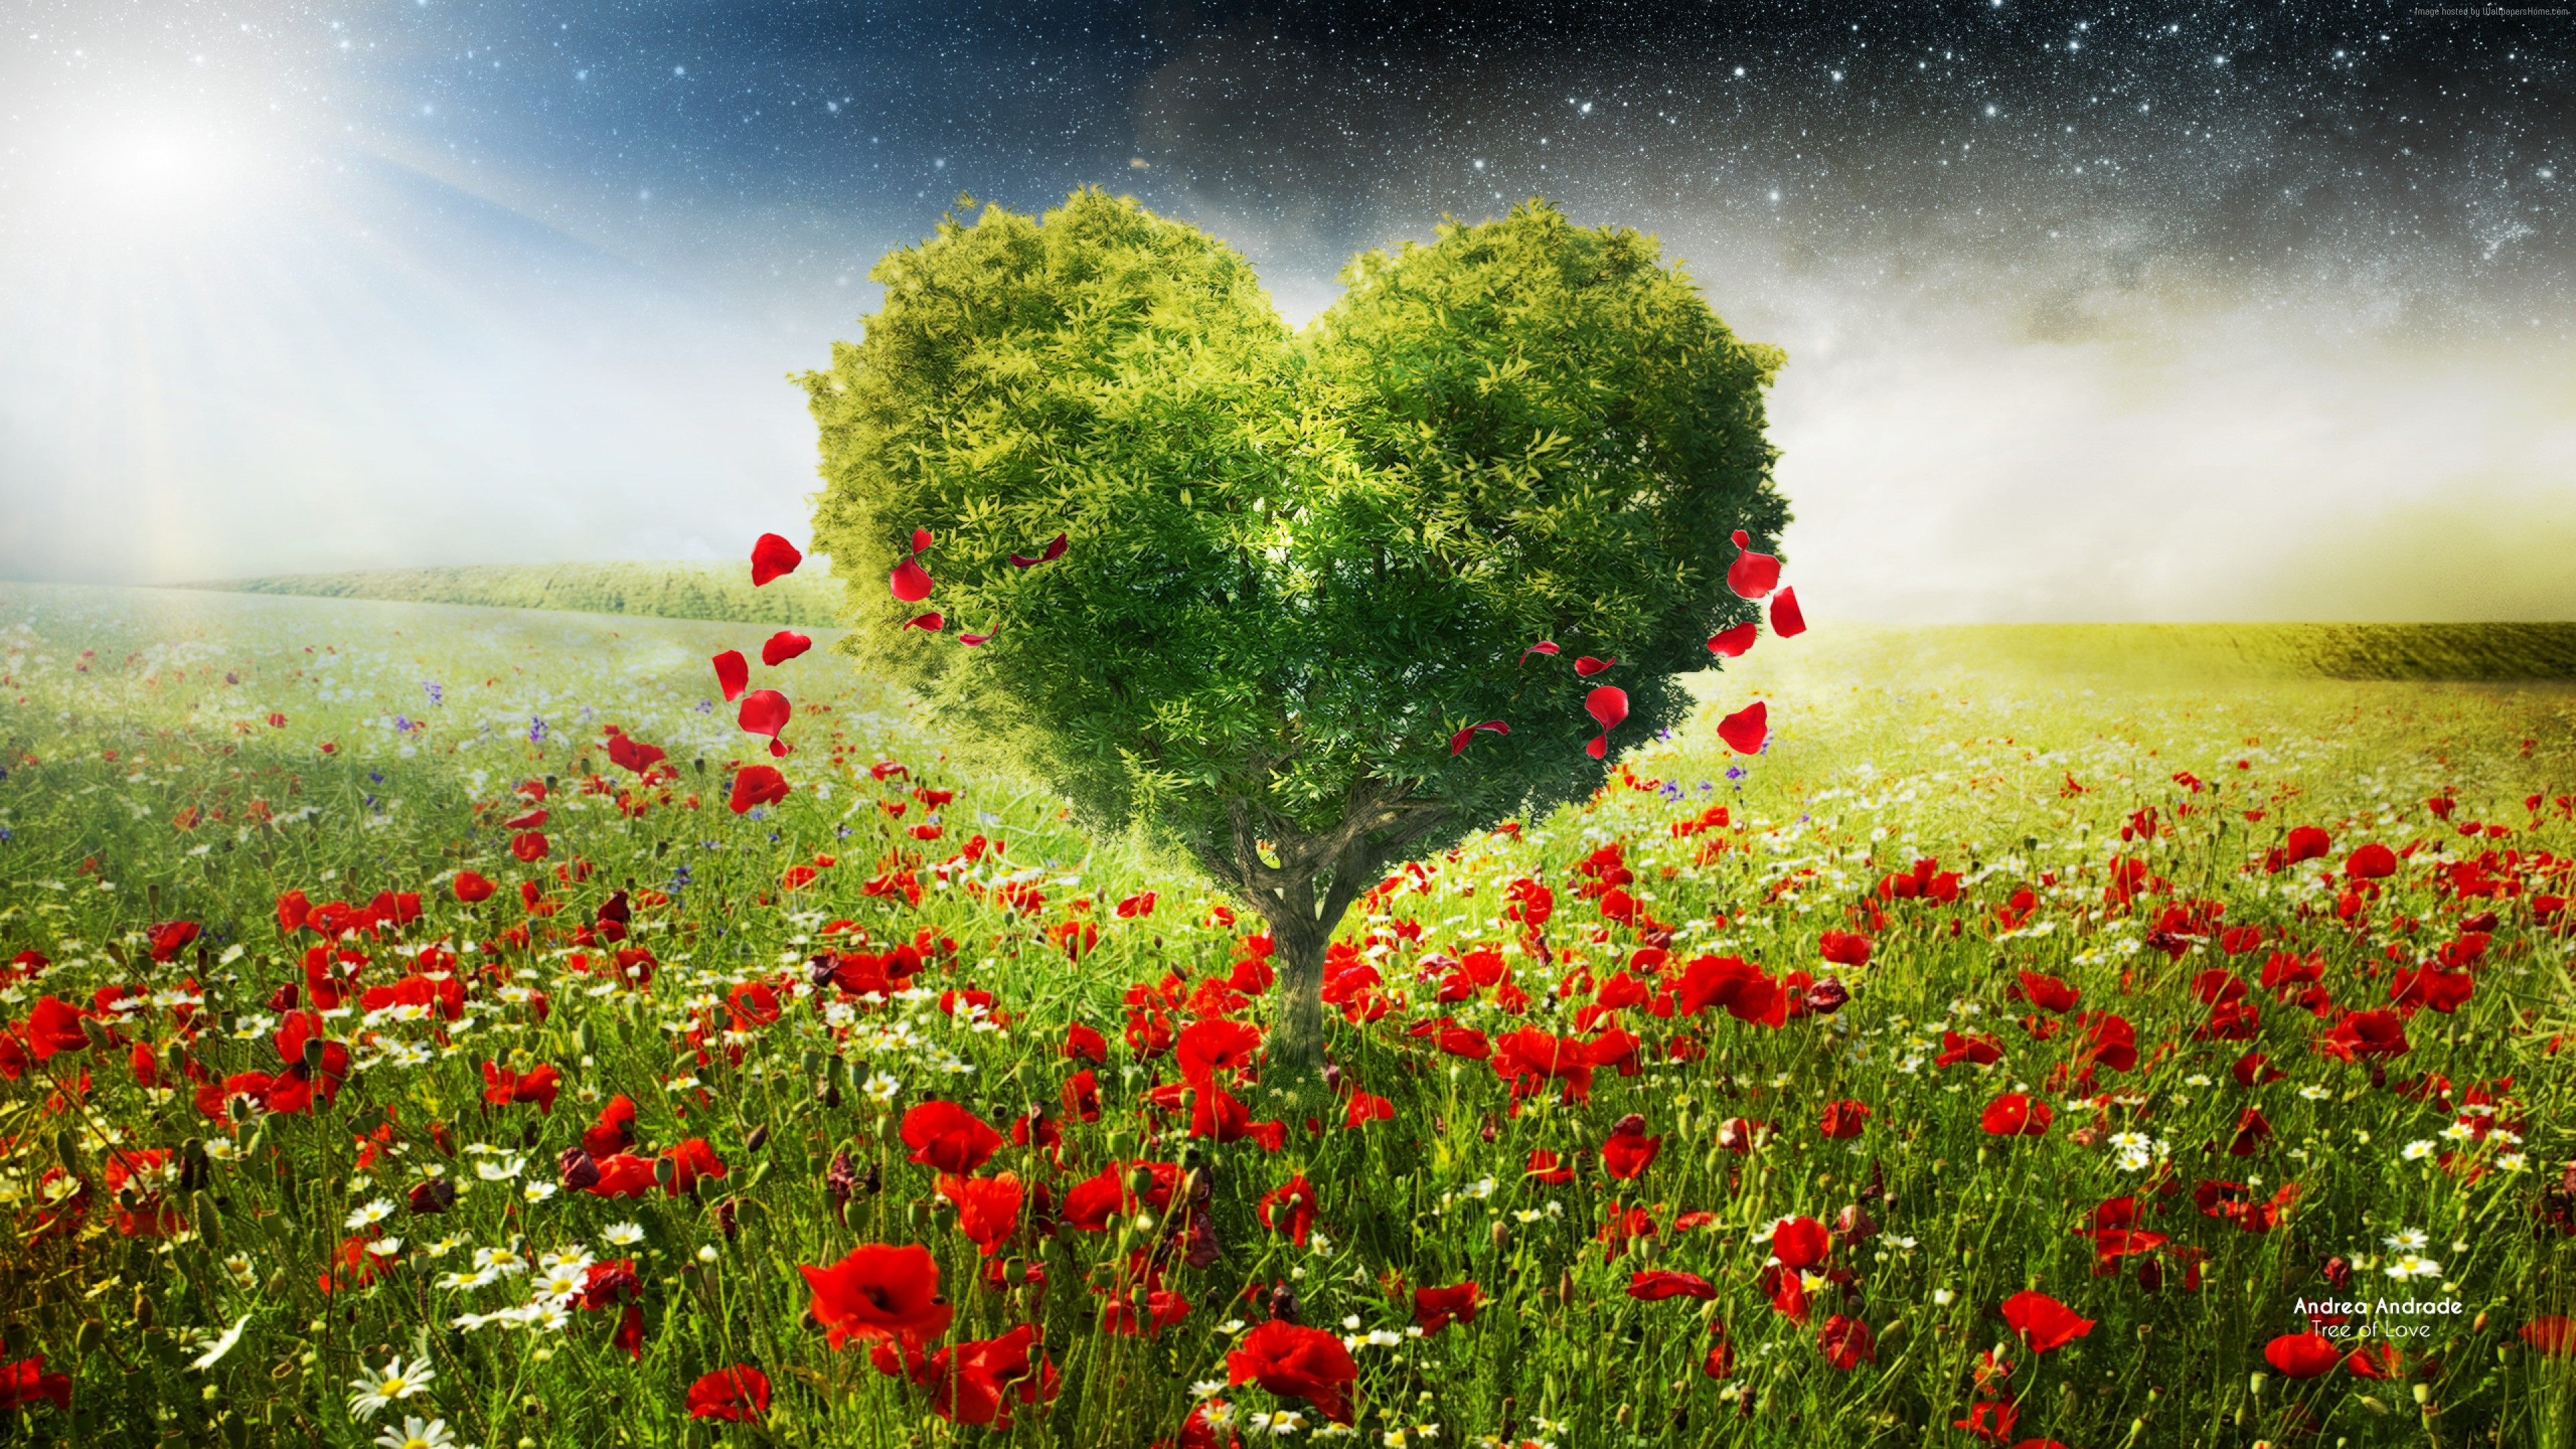 Stock Images love image, heart, HD, tree, Stock Images